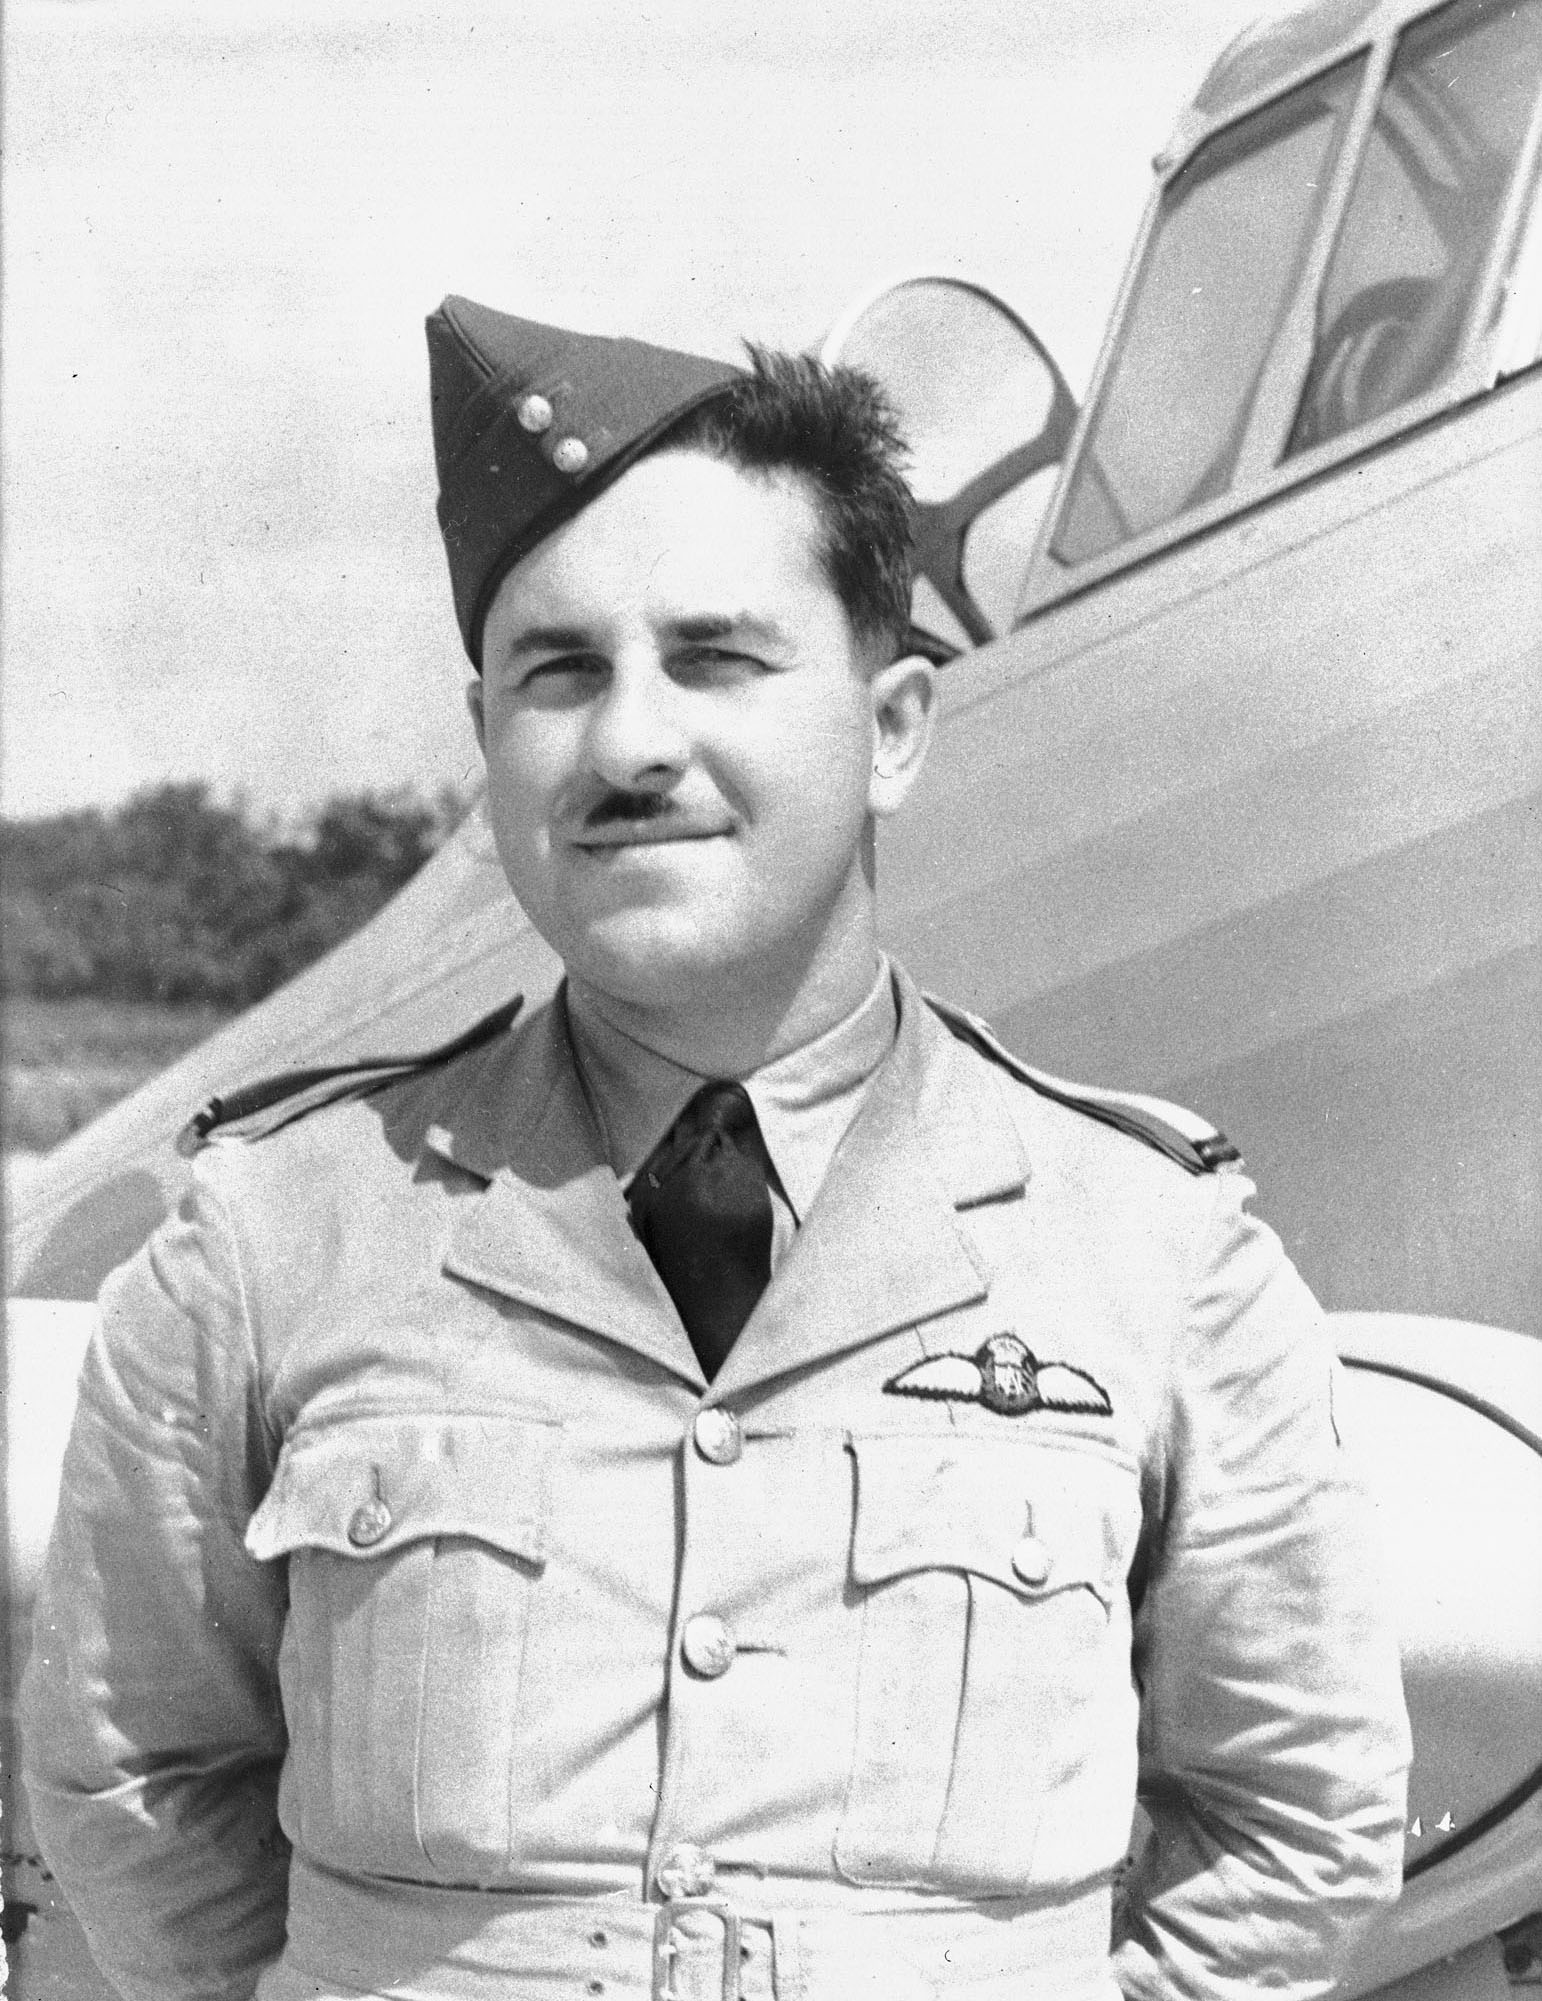 Une photo du lieutenant d'aviation Jean-Paul Desloges prise en 1940. PHOTO : MDN